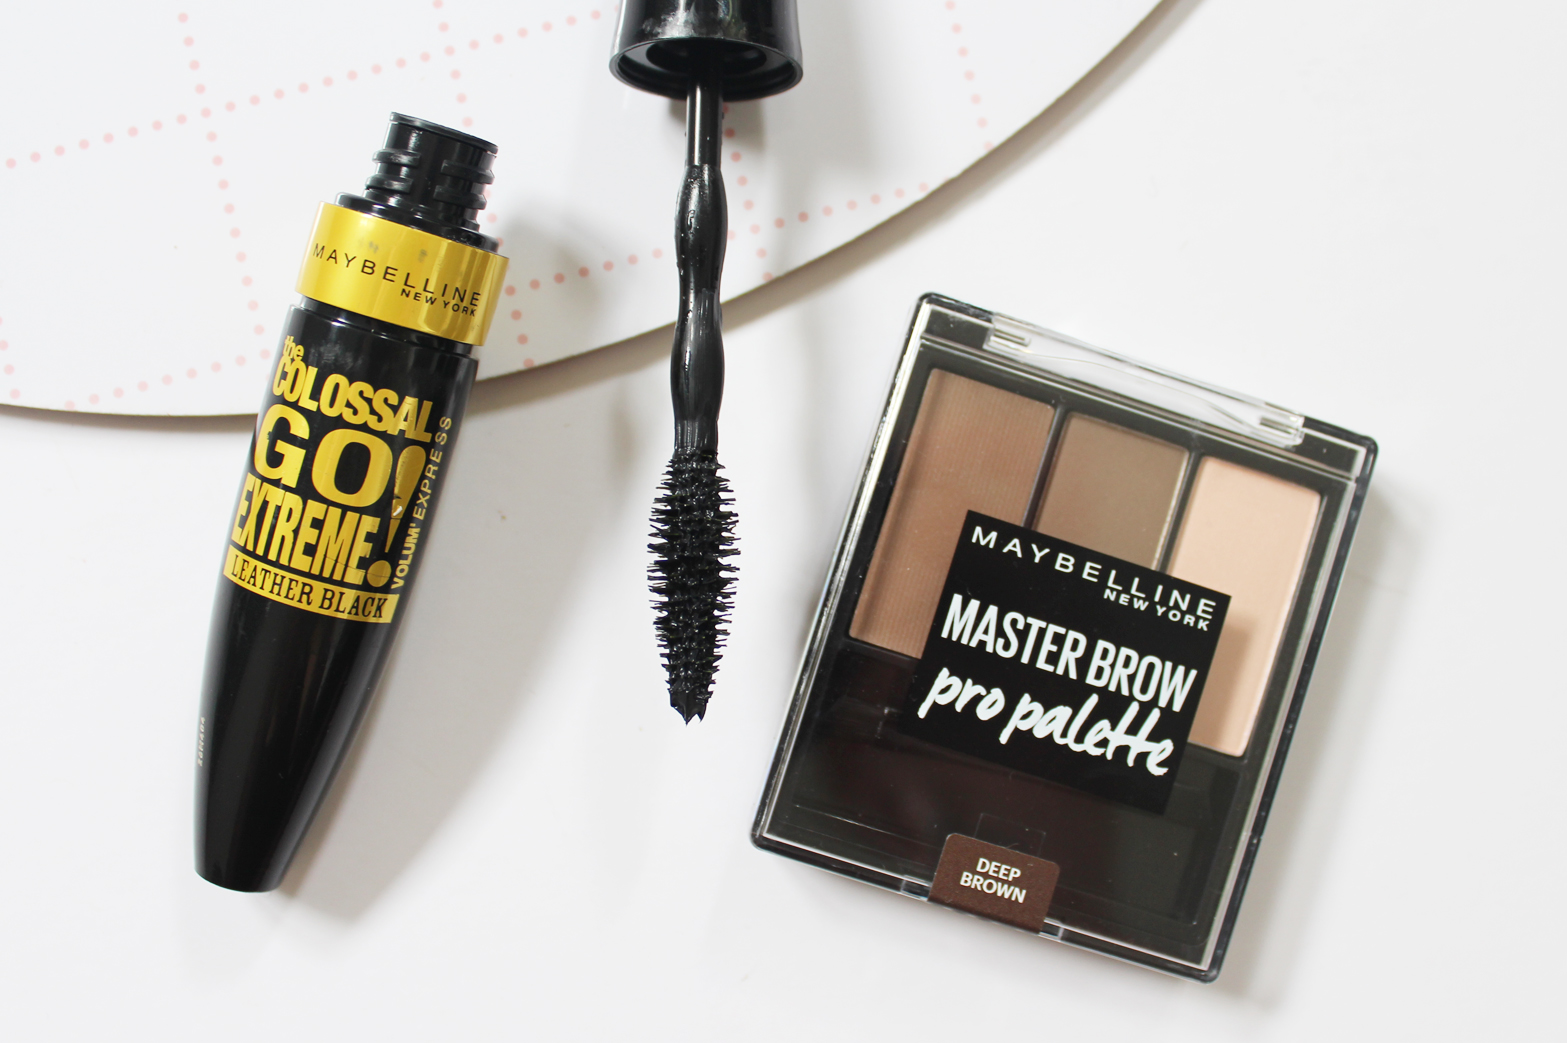 MAYBELLINE | New Releases for NZ - Feb '16 - CassandraMyee